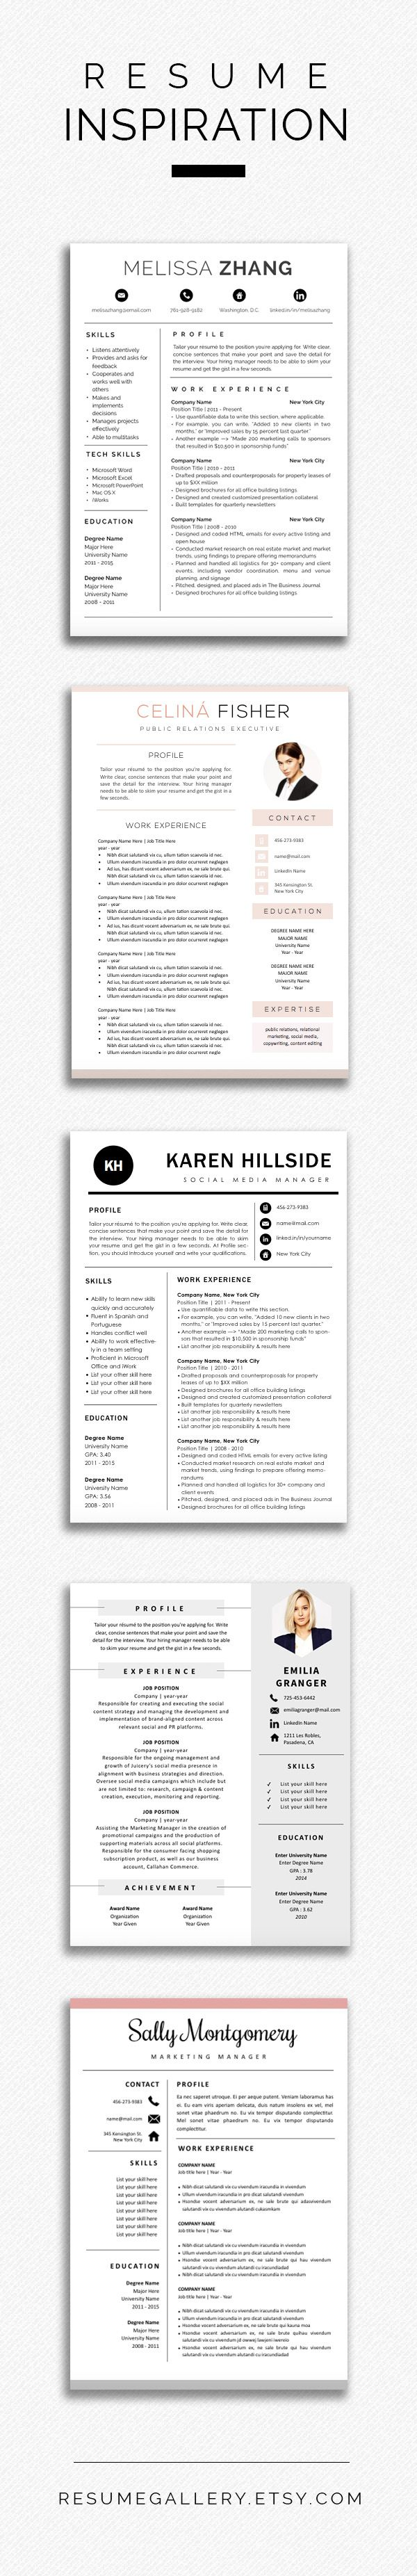 List Of Resume Skills New 42 Best Resume Writing Images On Pinterest  Gym Resume And Interview